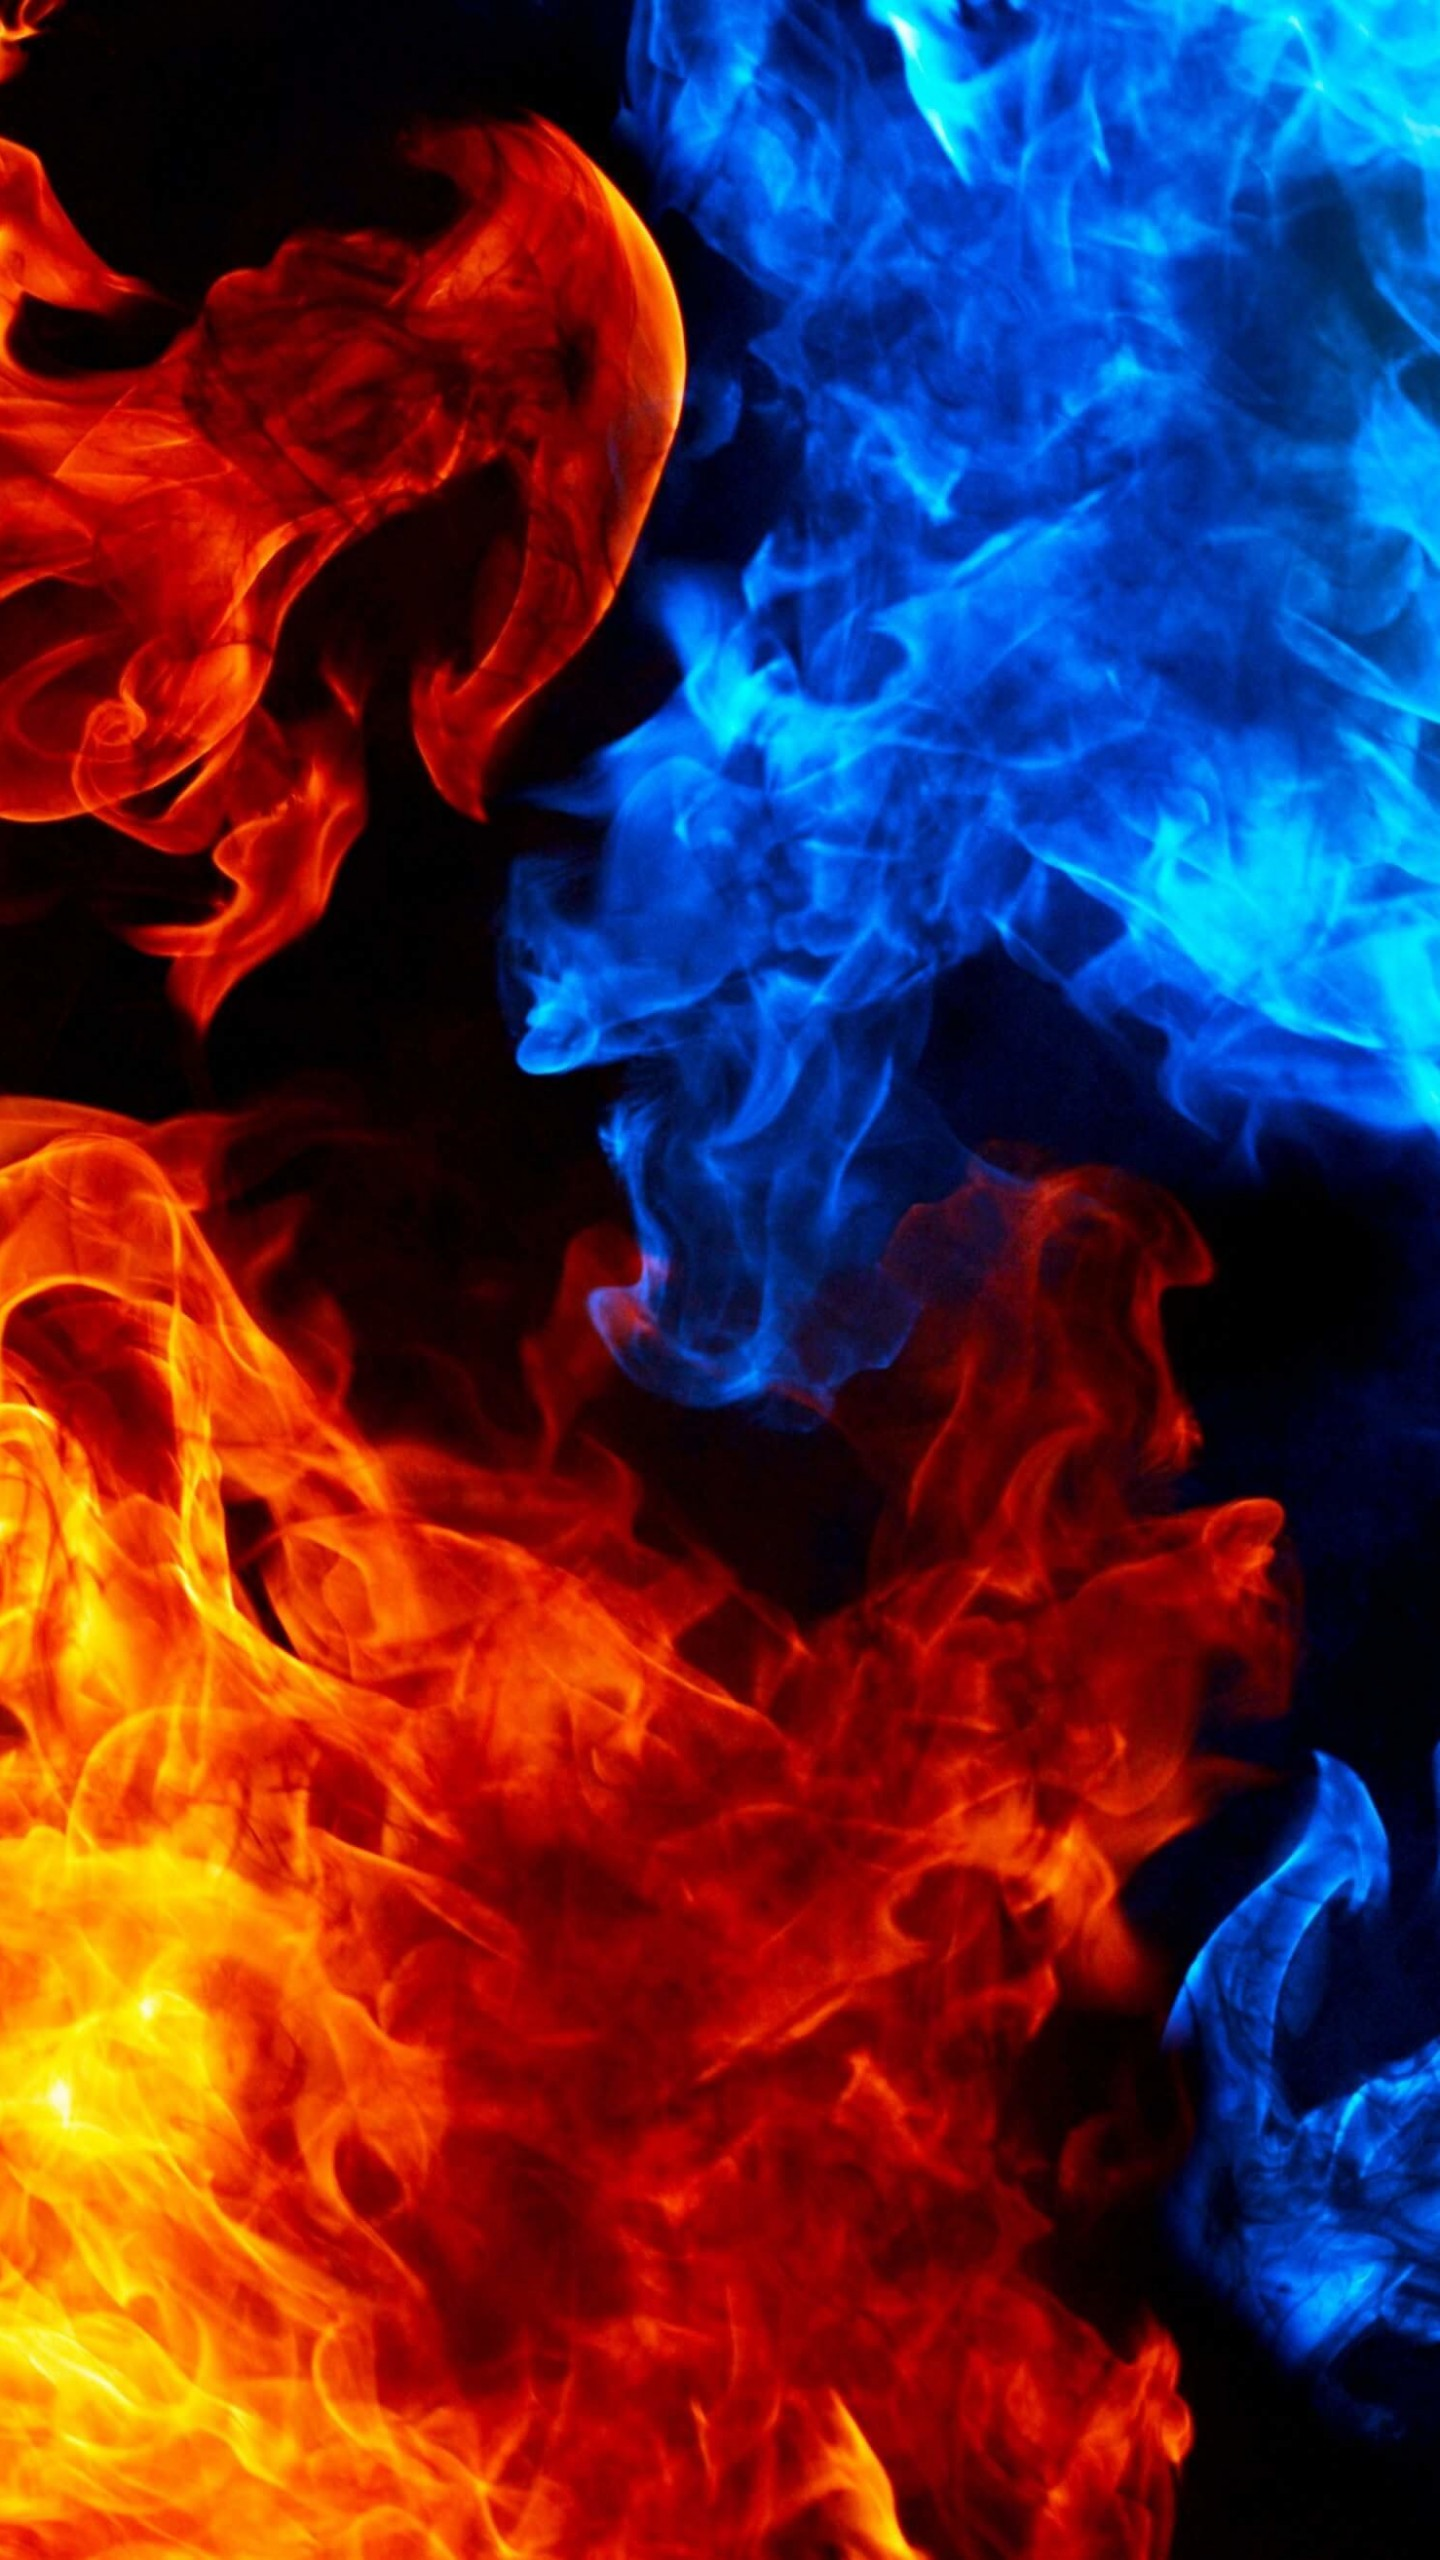 Blue And Red Fire Wallpaper for Google Nexus 6P